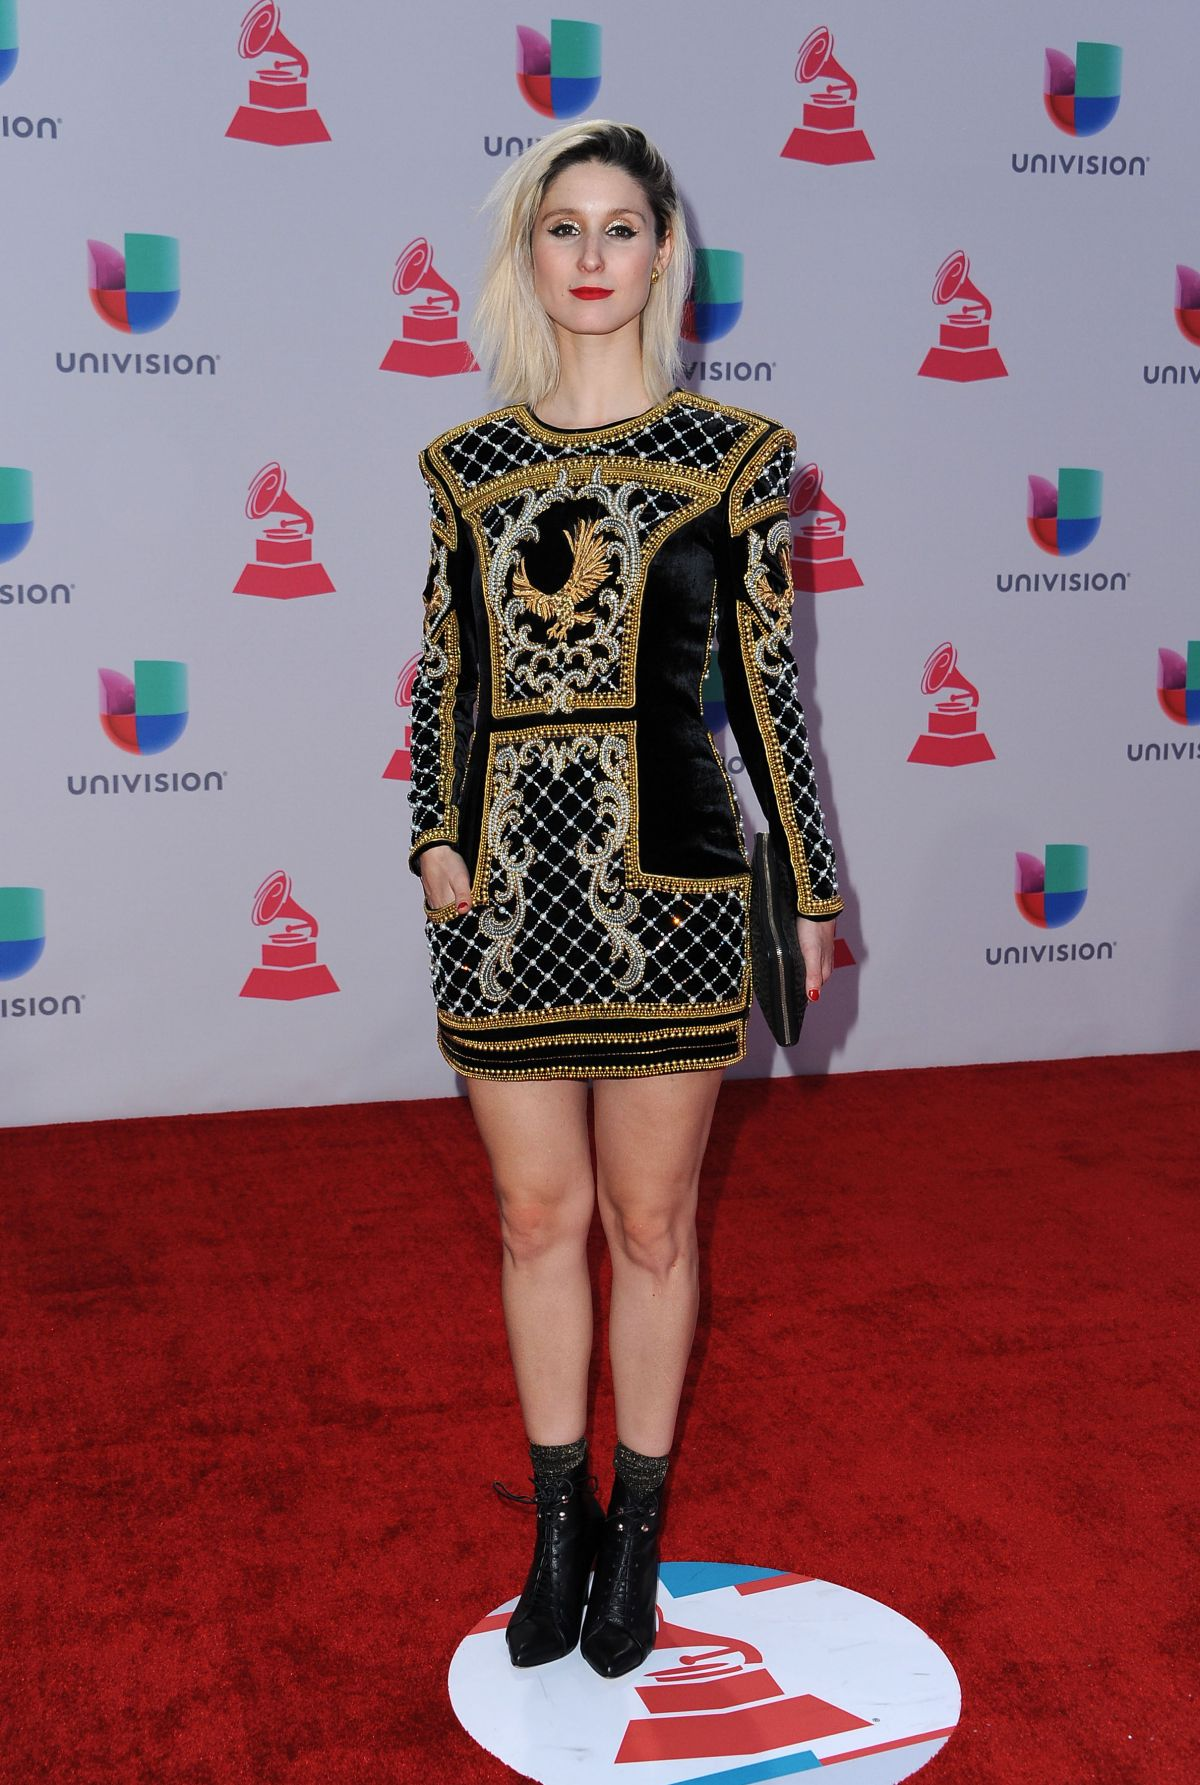 FRANCISCA VELENZUELA at 2015 Latin Grammy Awards in Las Vegas 11/18/2015